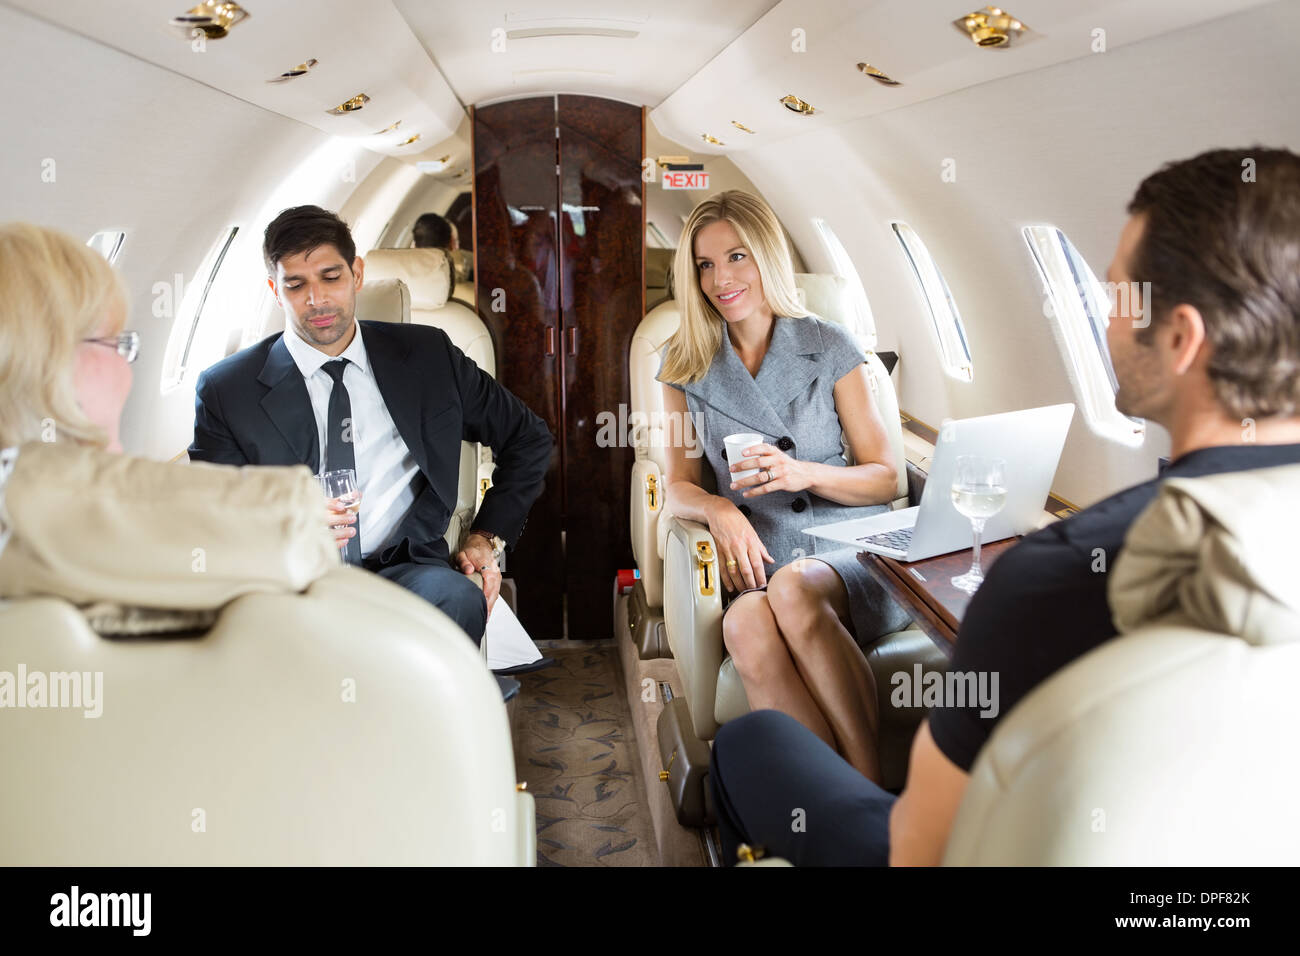 Business People Having Drinks On Private Jet - Stock Image